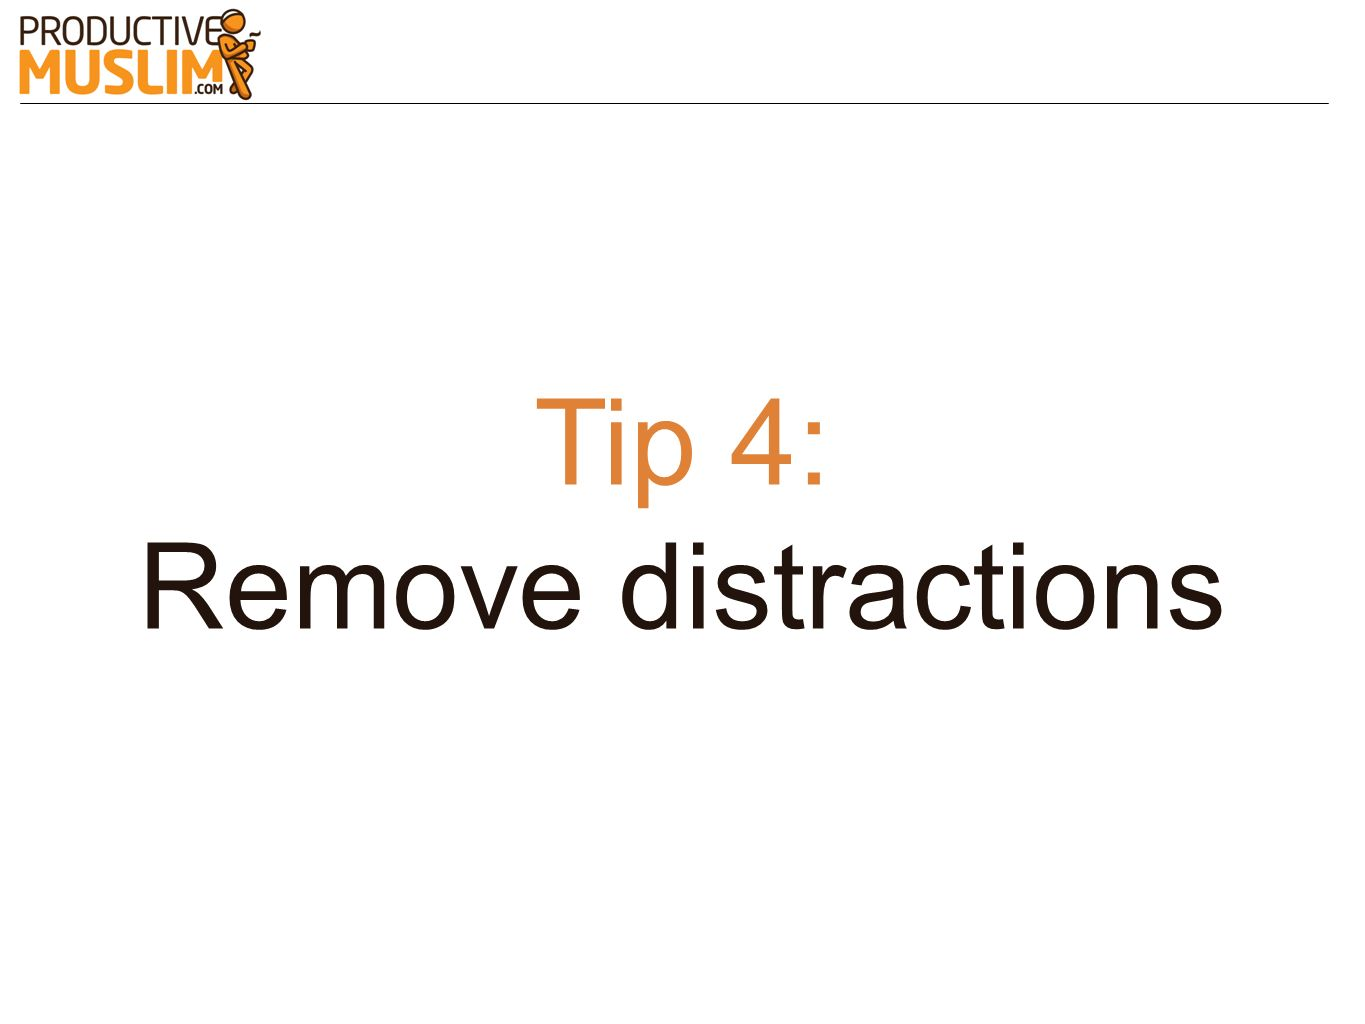 Tip 4: Remove distractions